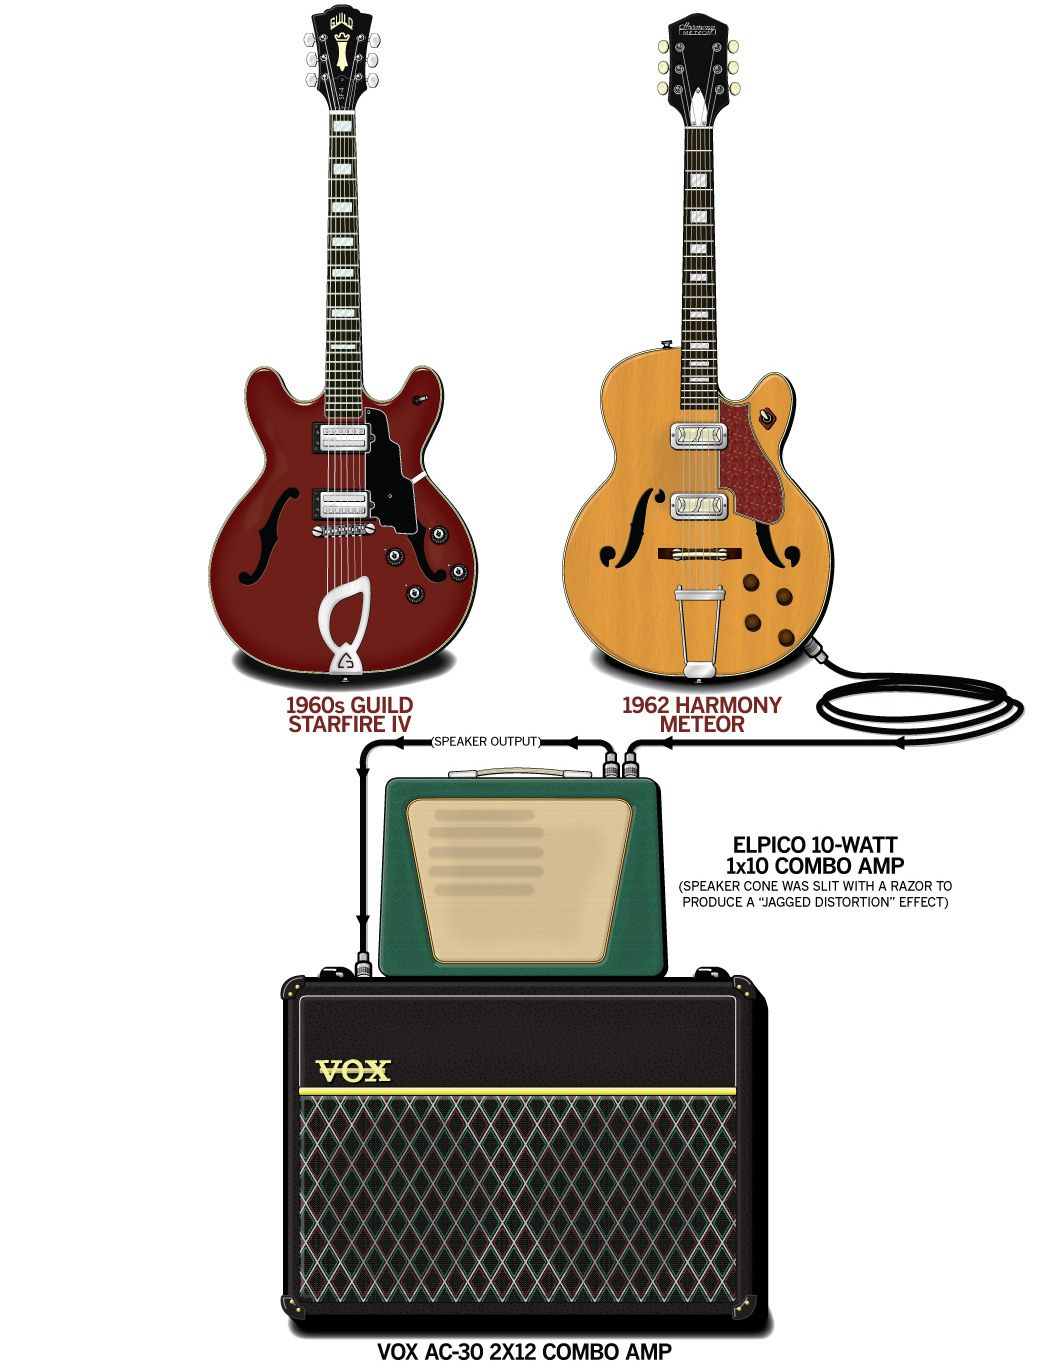 Dave davies the kinks 1964 guitar guitarists a detailed gear diagram of dave davies 1964 the kinks stage setup that traces the signal flow of the equipment in his guitar rig hexwebz Image collections